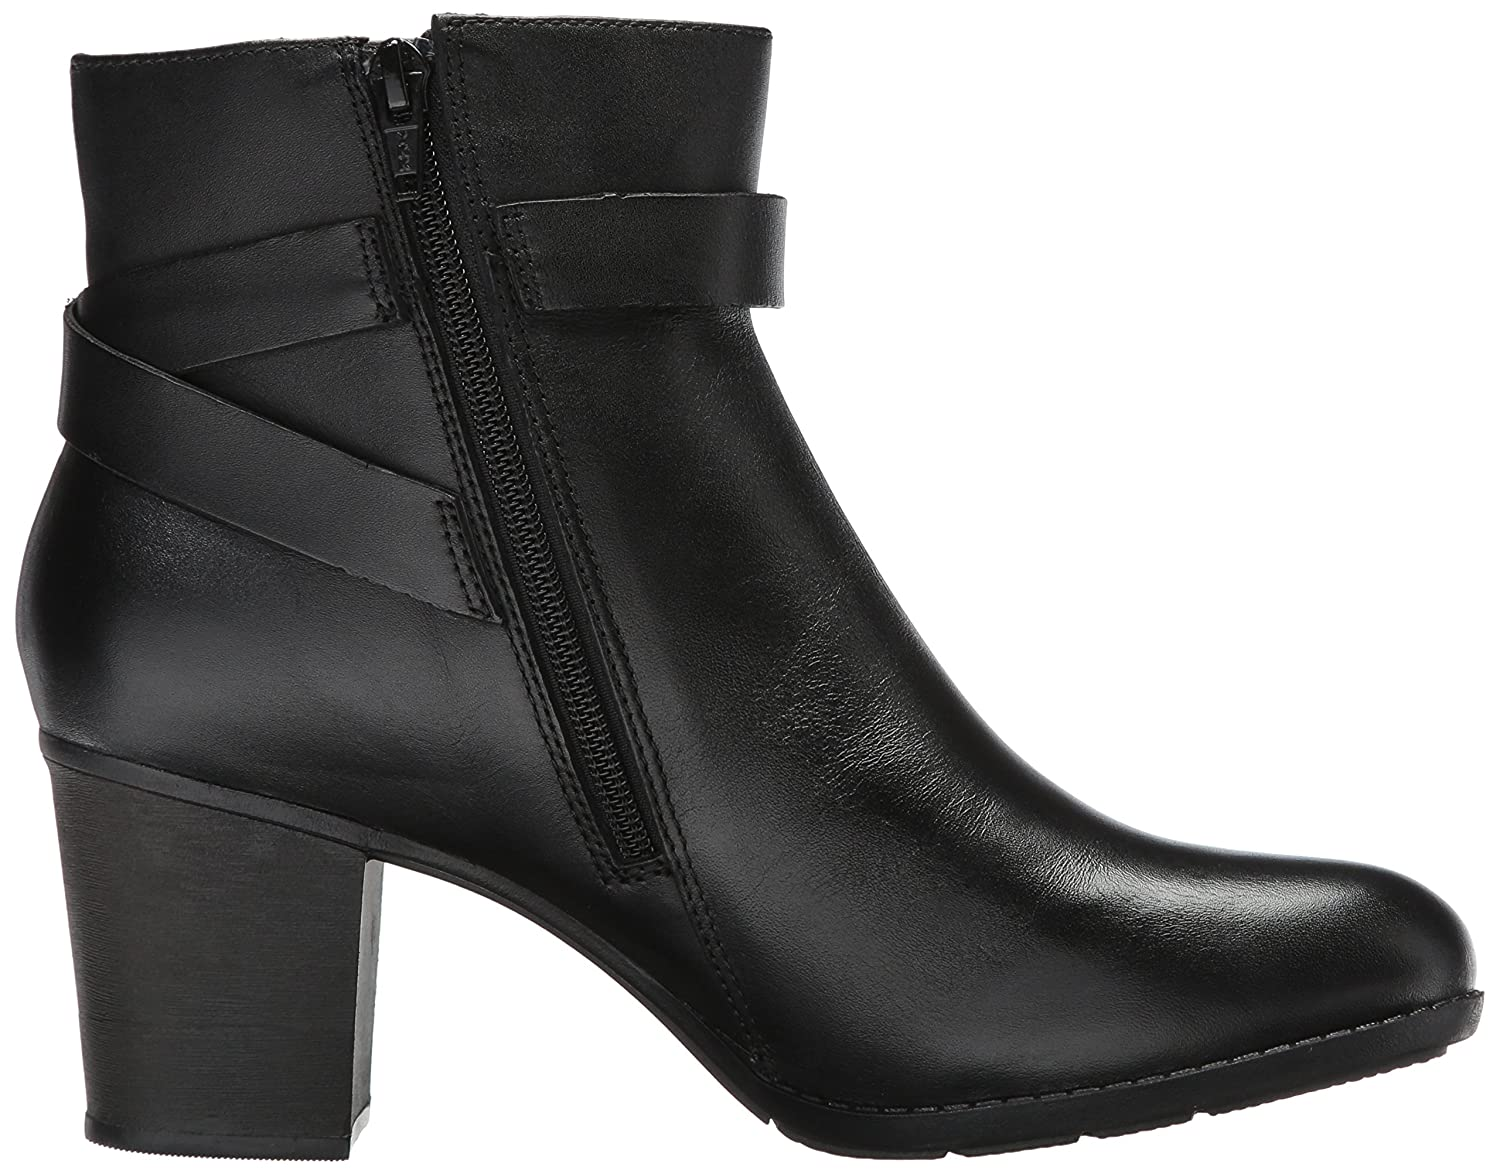 CLARKS Women's Enfield Sari Ankle Bootie Leather B01MS27W0K 6 W US Black Leather Bootie b7d19c